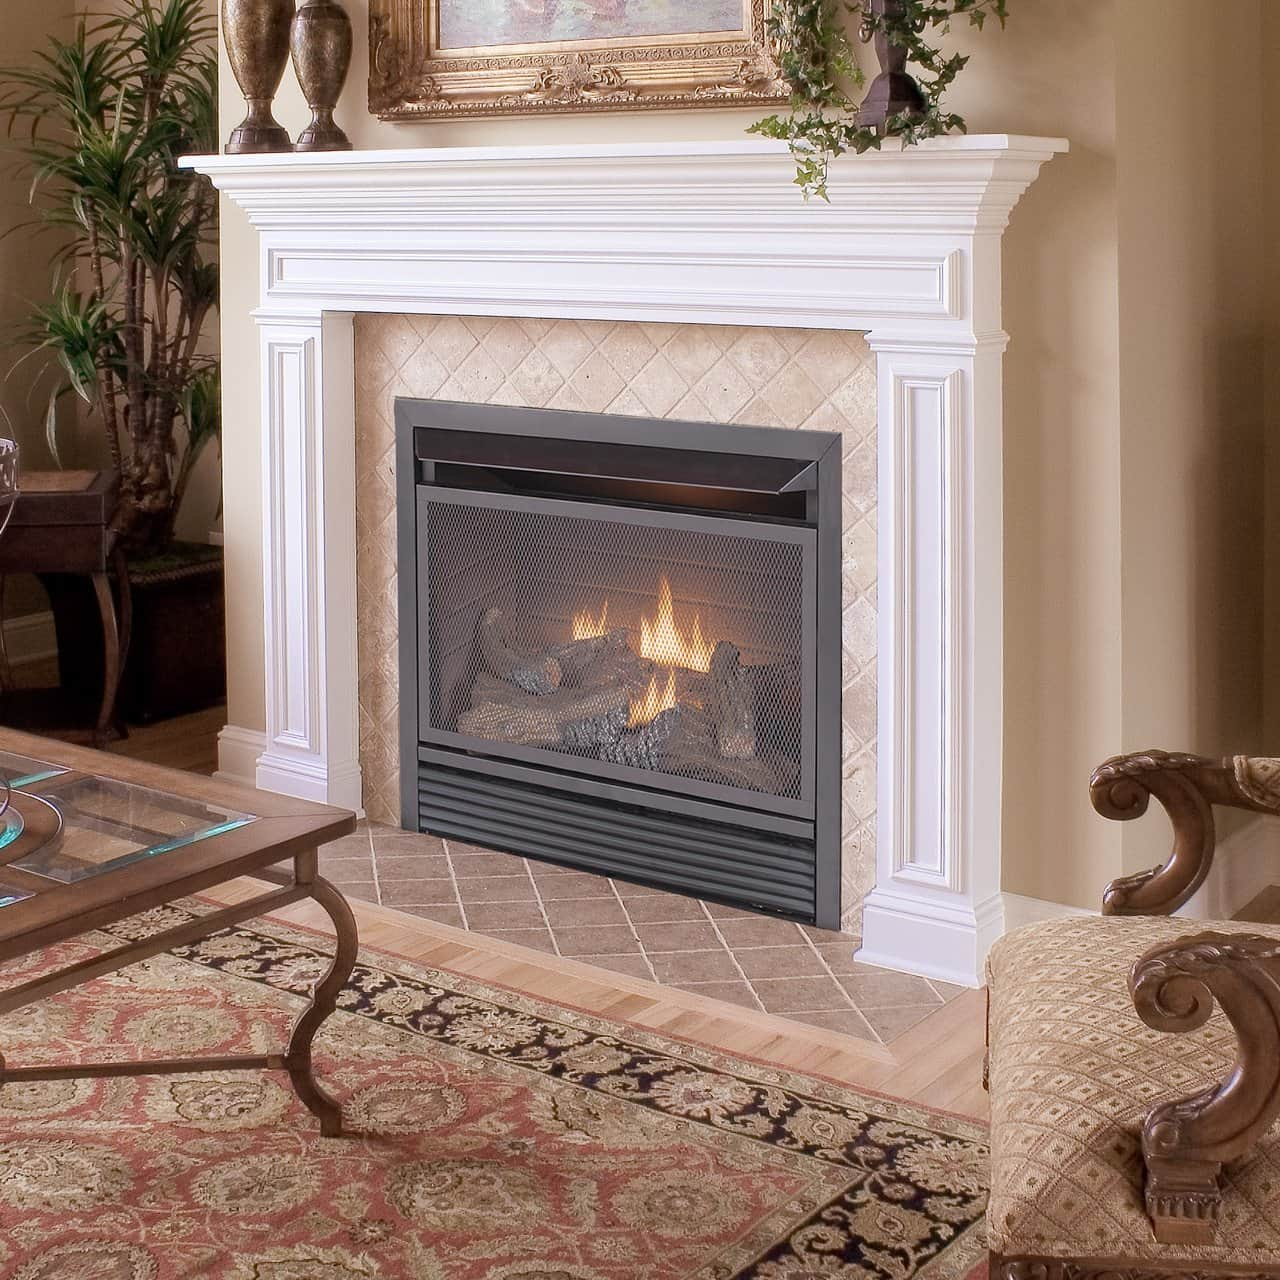 Best Gas Fireplace And Gas Insert For